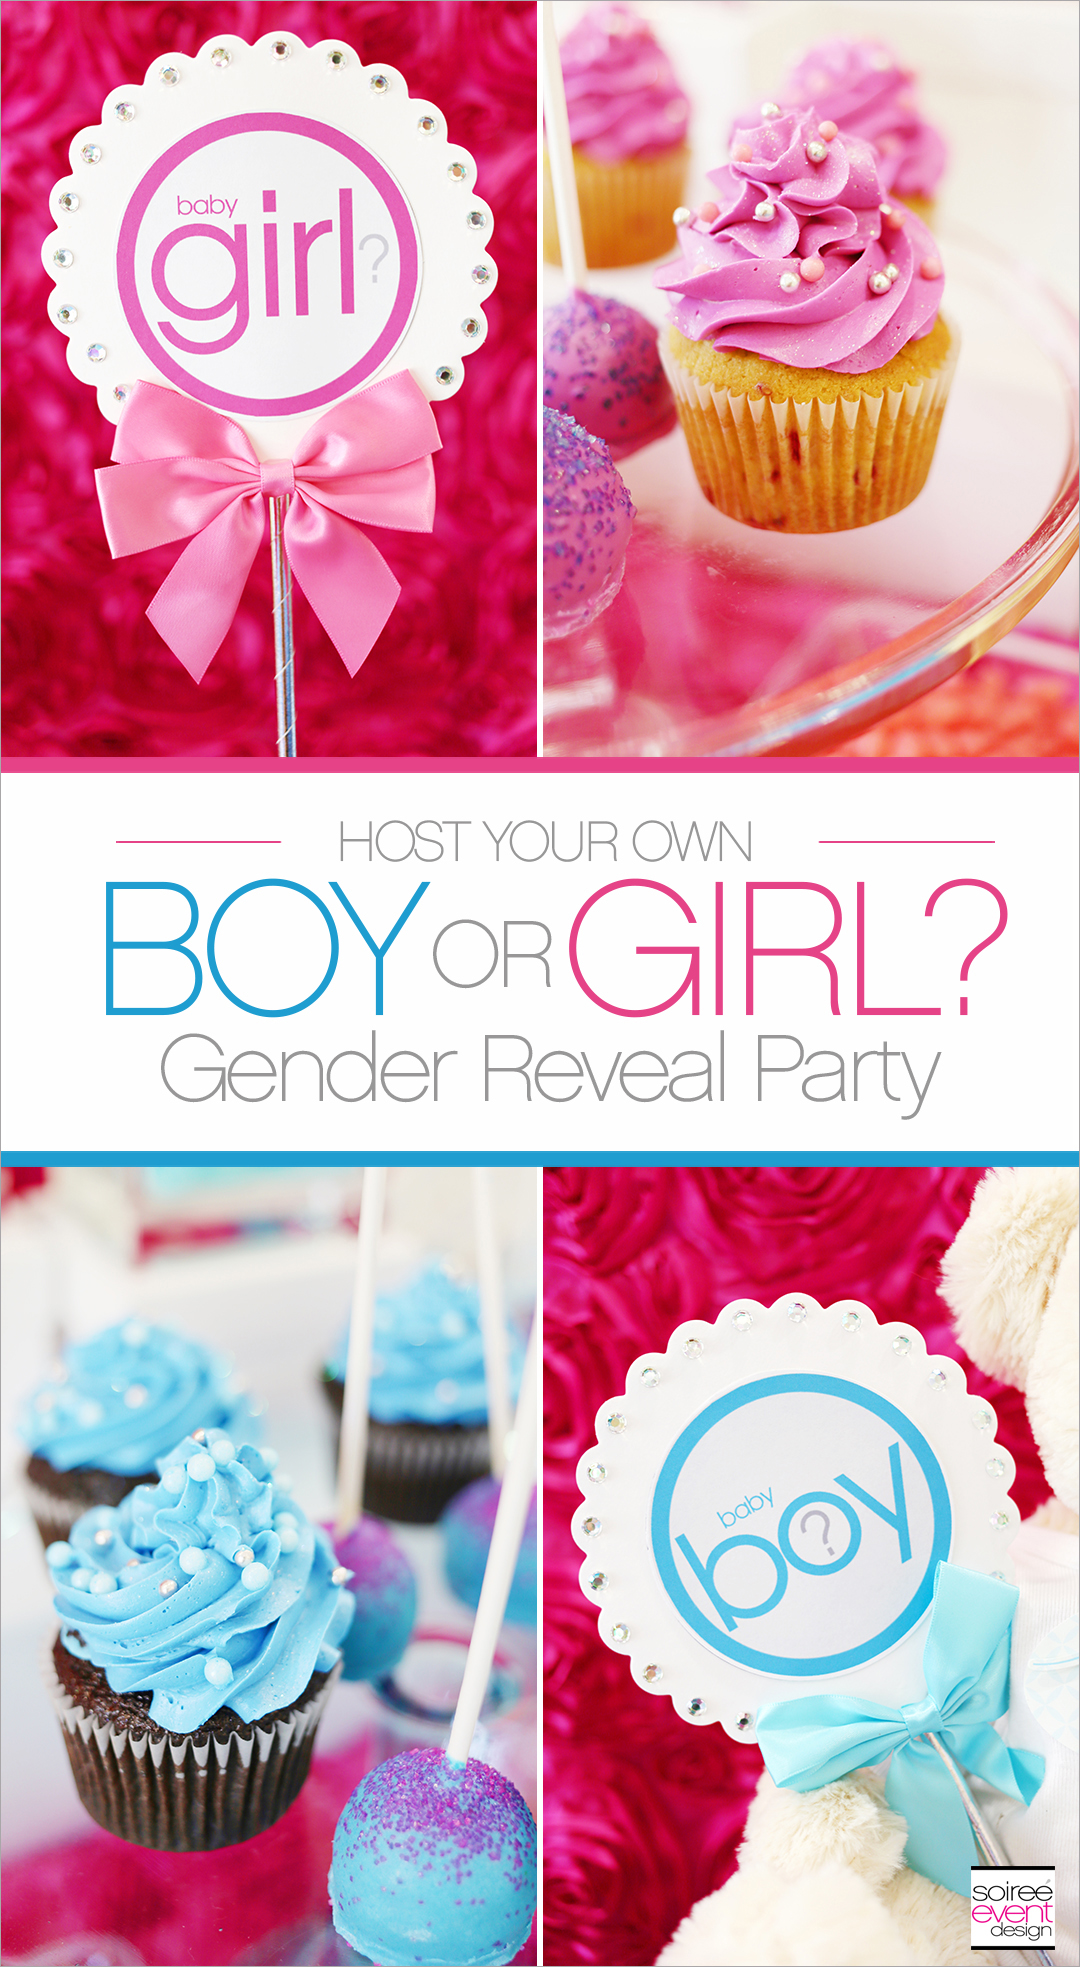 How to Host a Gender Reveal Party 1